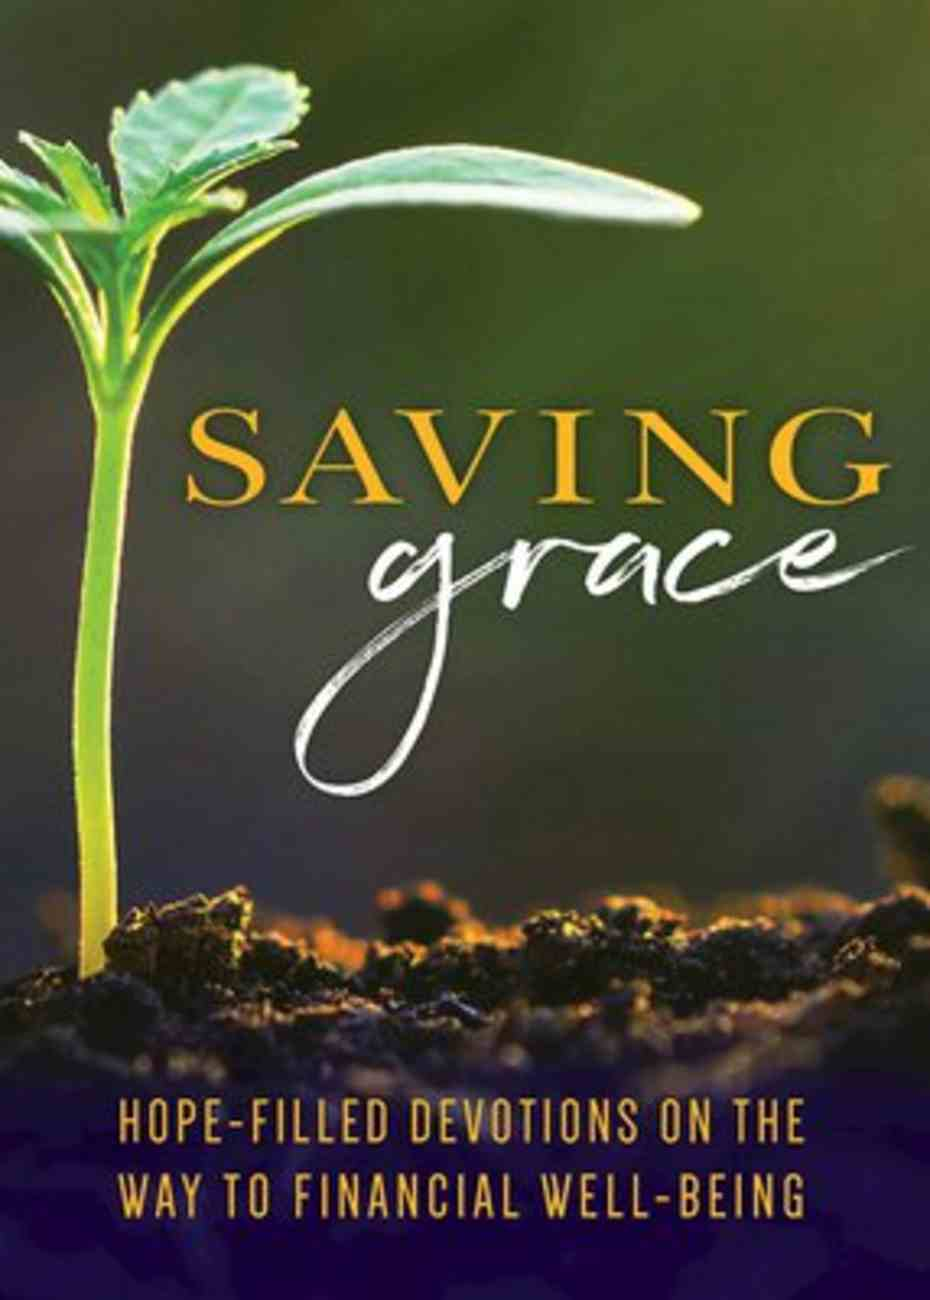 Saving Grace Devotional: A Guide to Financial Well-Being Paperback